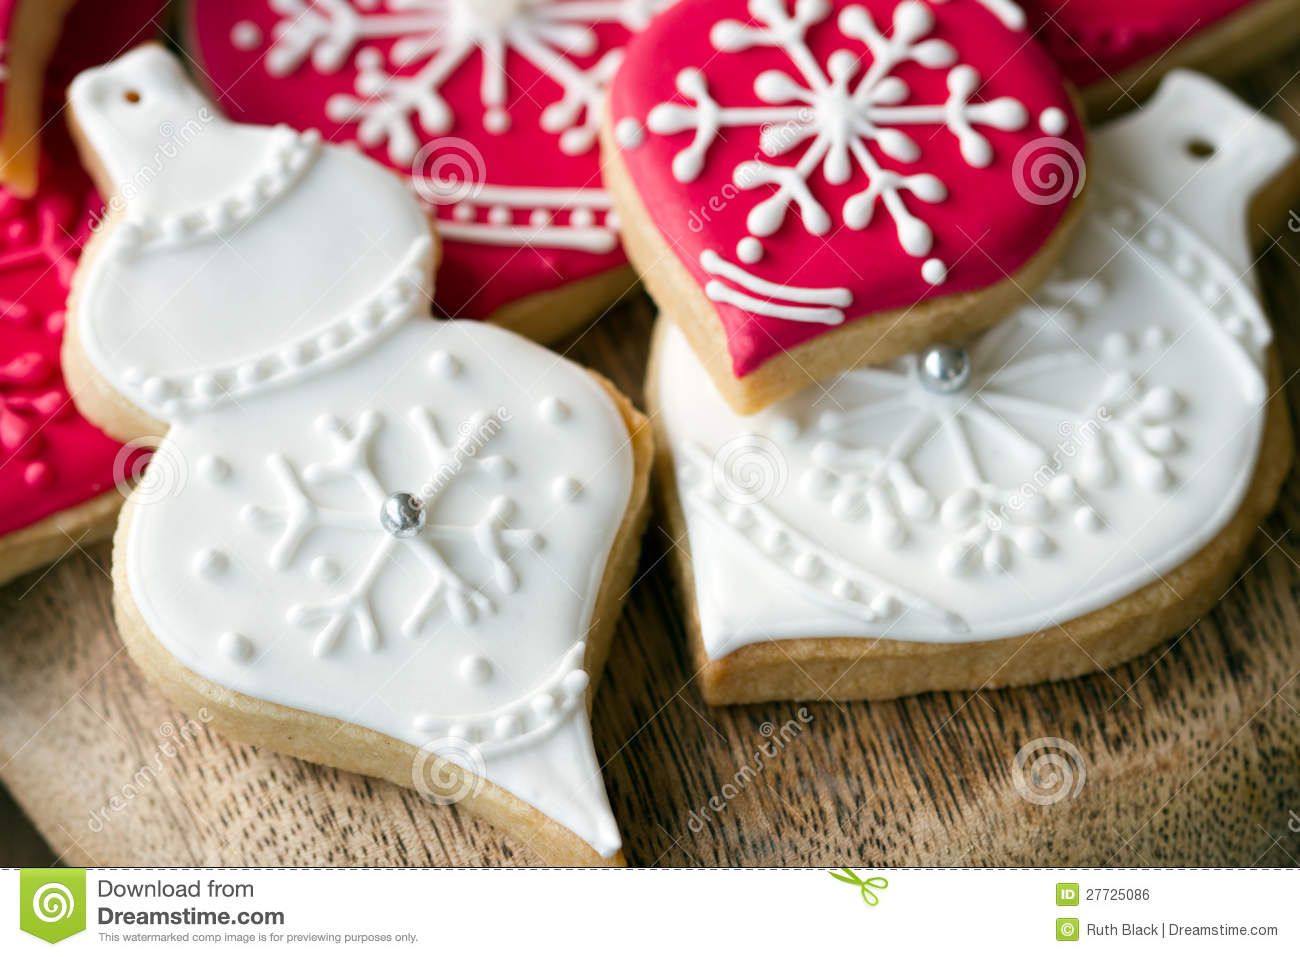 Christmas cookies stock photo. Image of treat, variety - 27725086